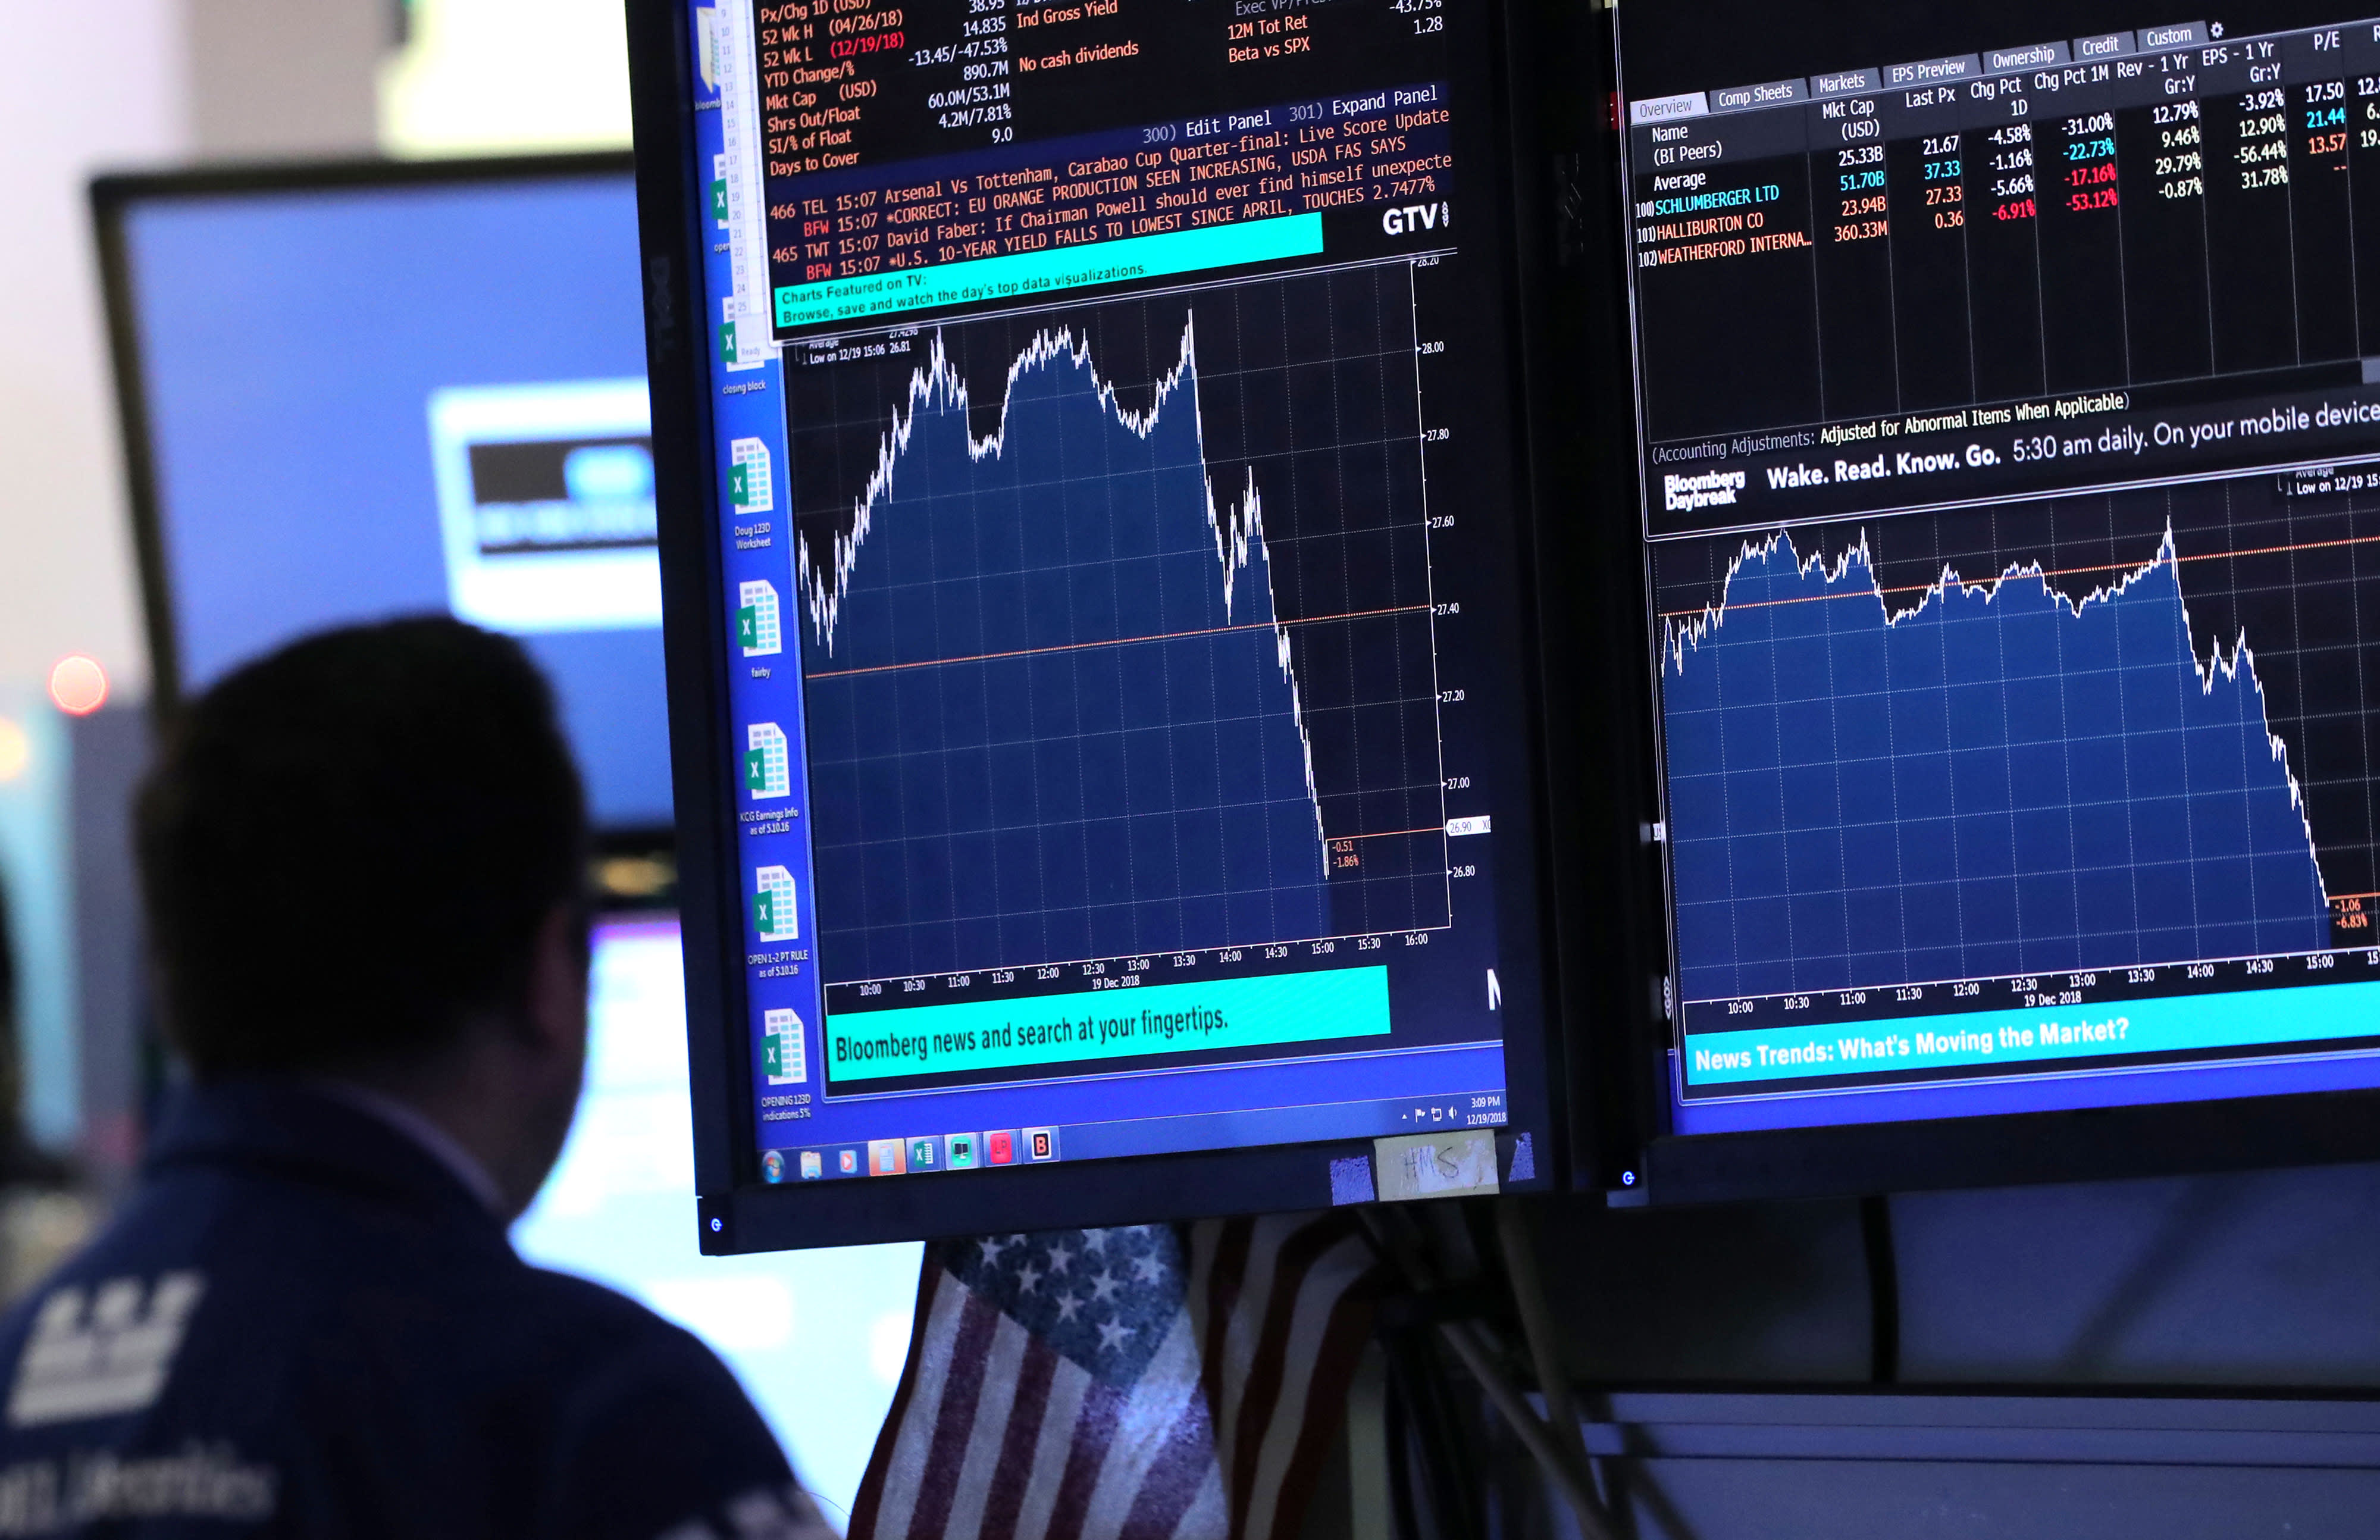 US stock market to lose top perch globally, and one reason is the election, KKR says